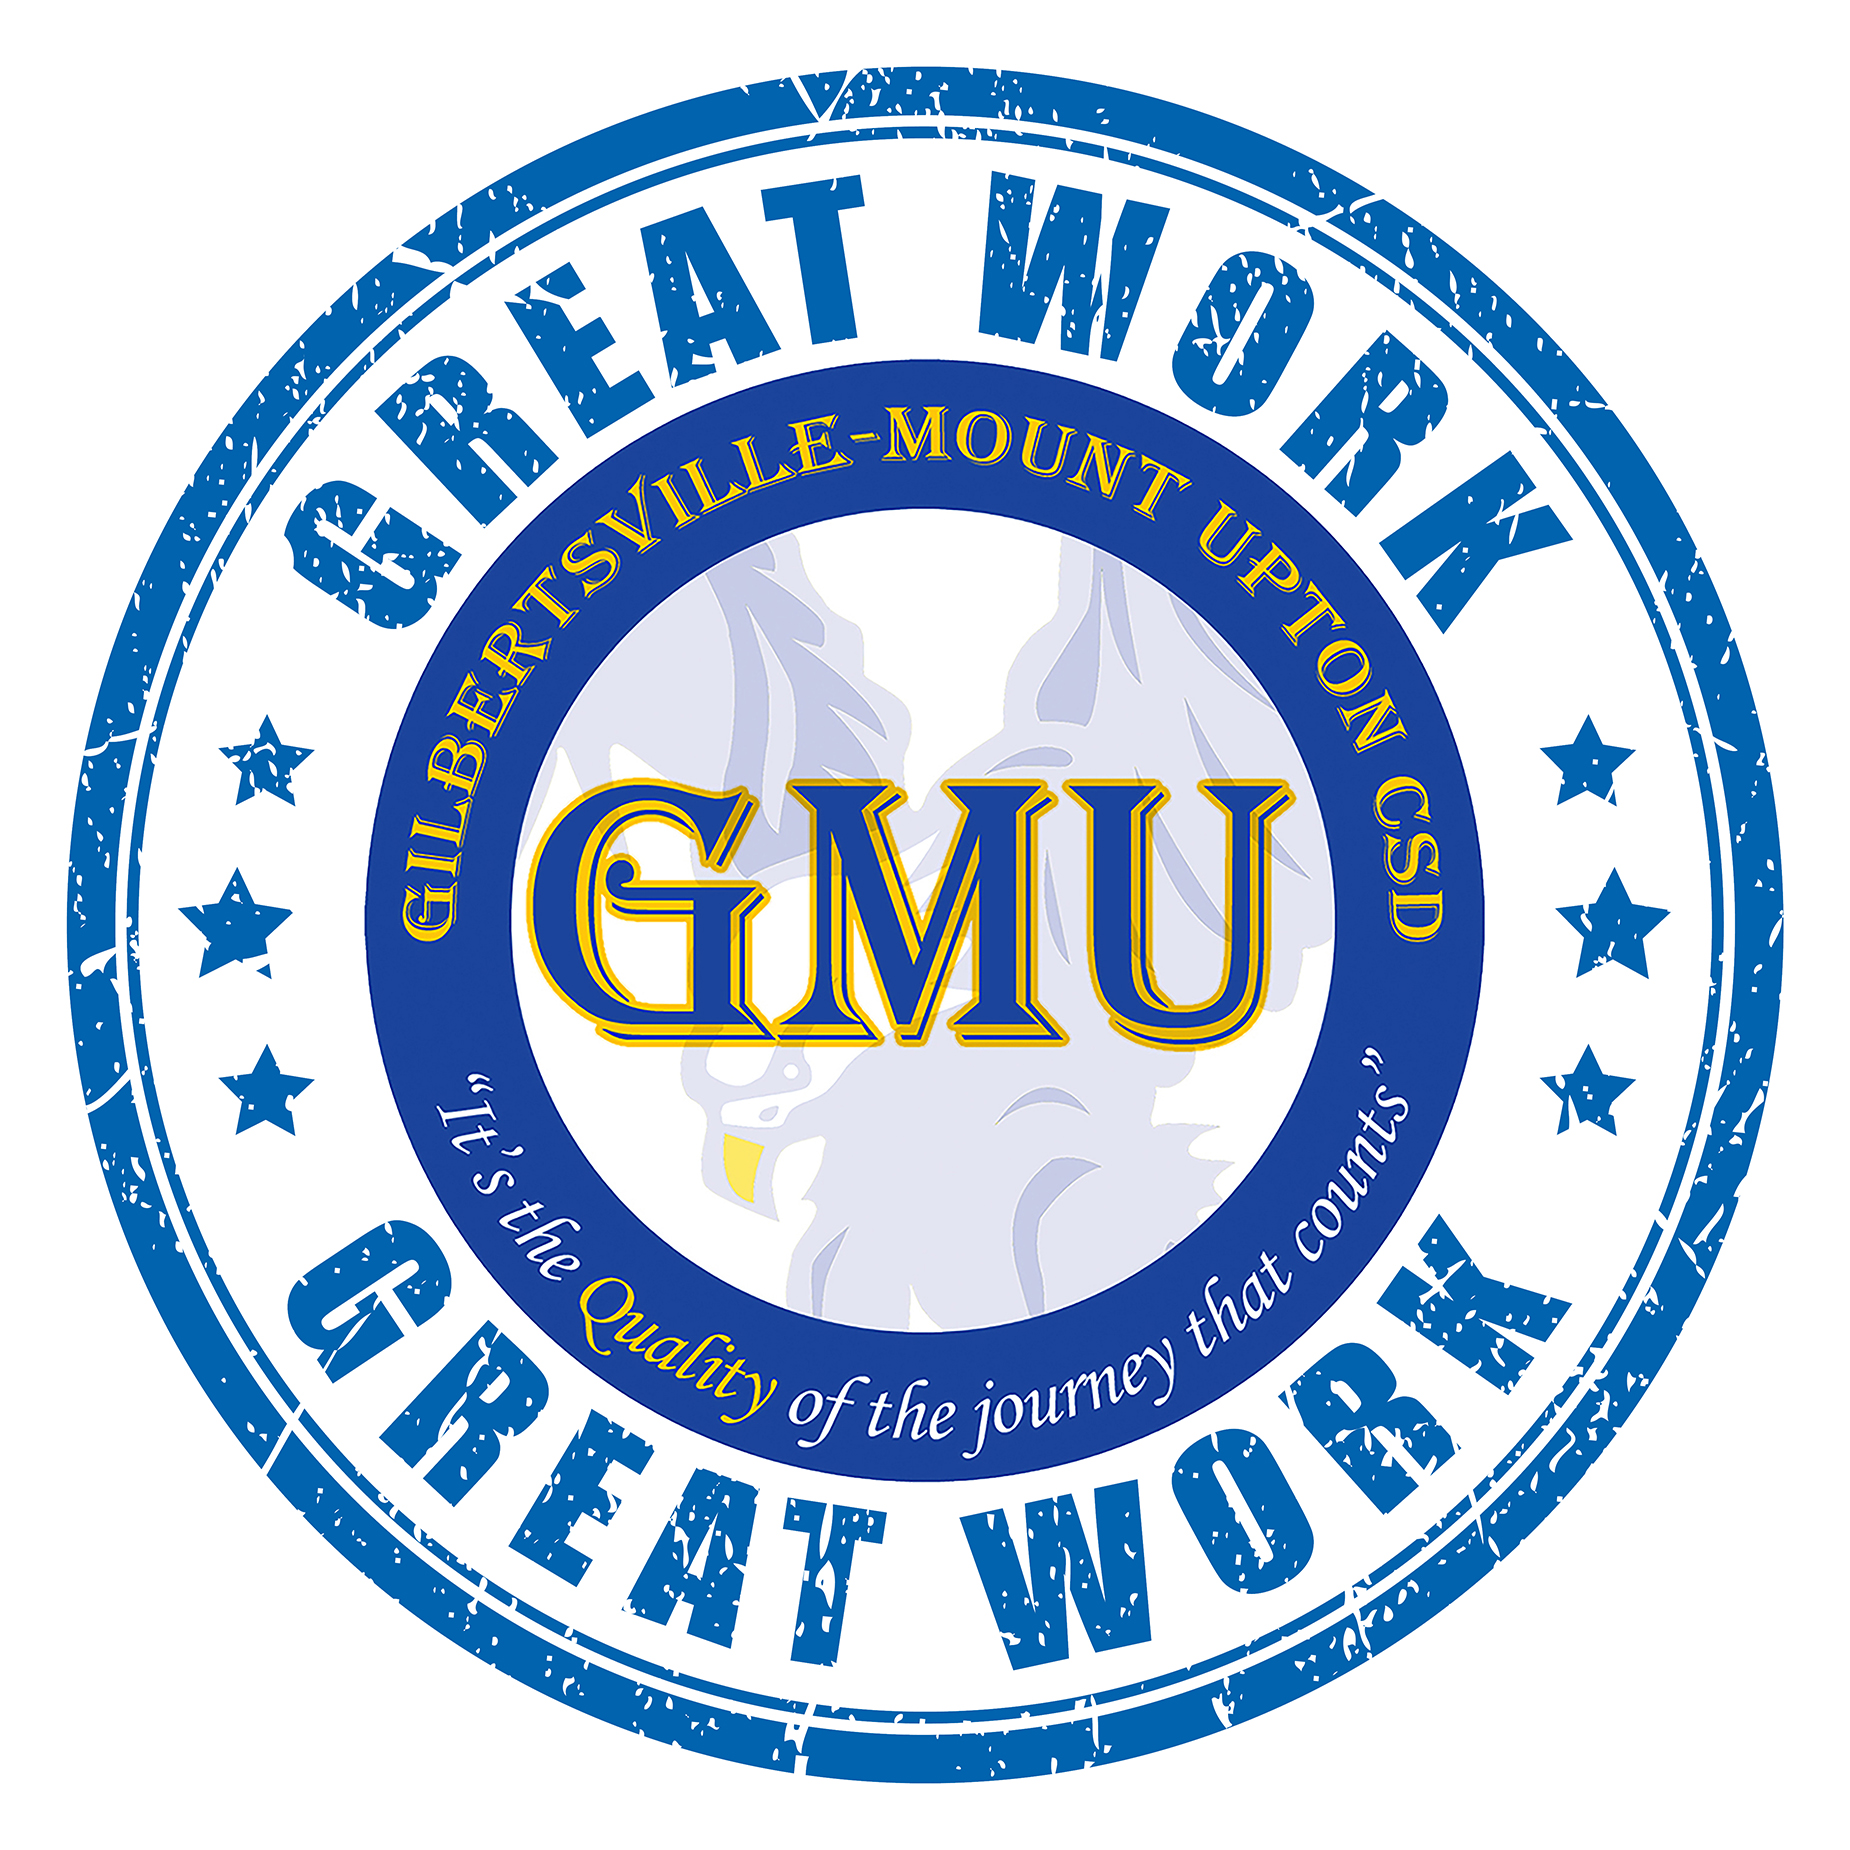 Great Work with GMU logo illustration (2/2021)